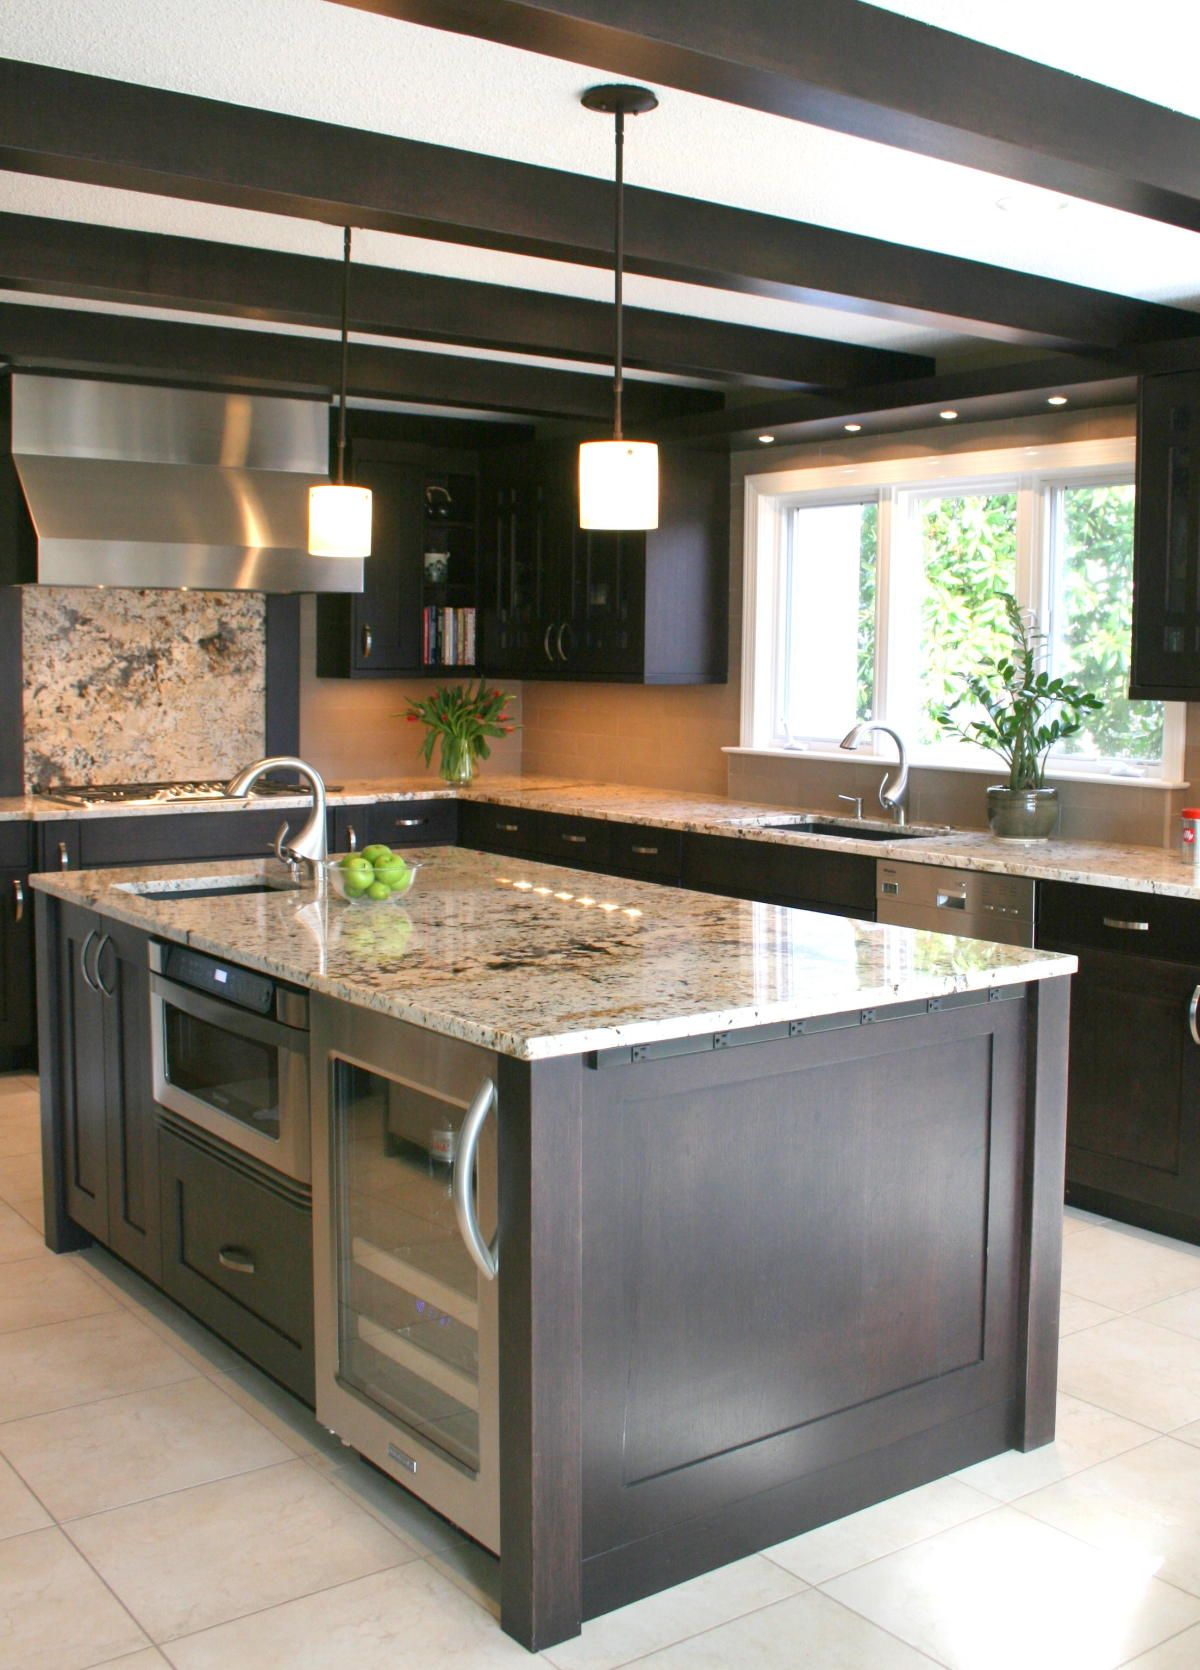 The working island appliances in the kitchen island for Kitchen design with island